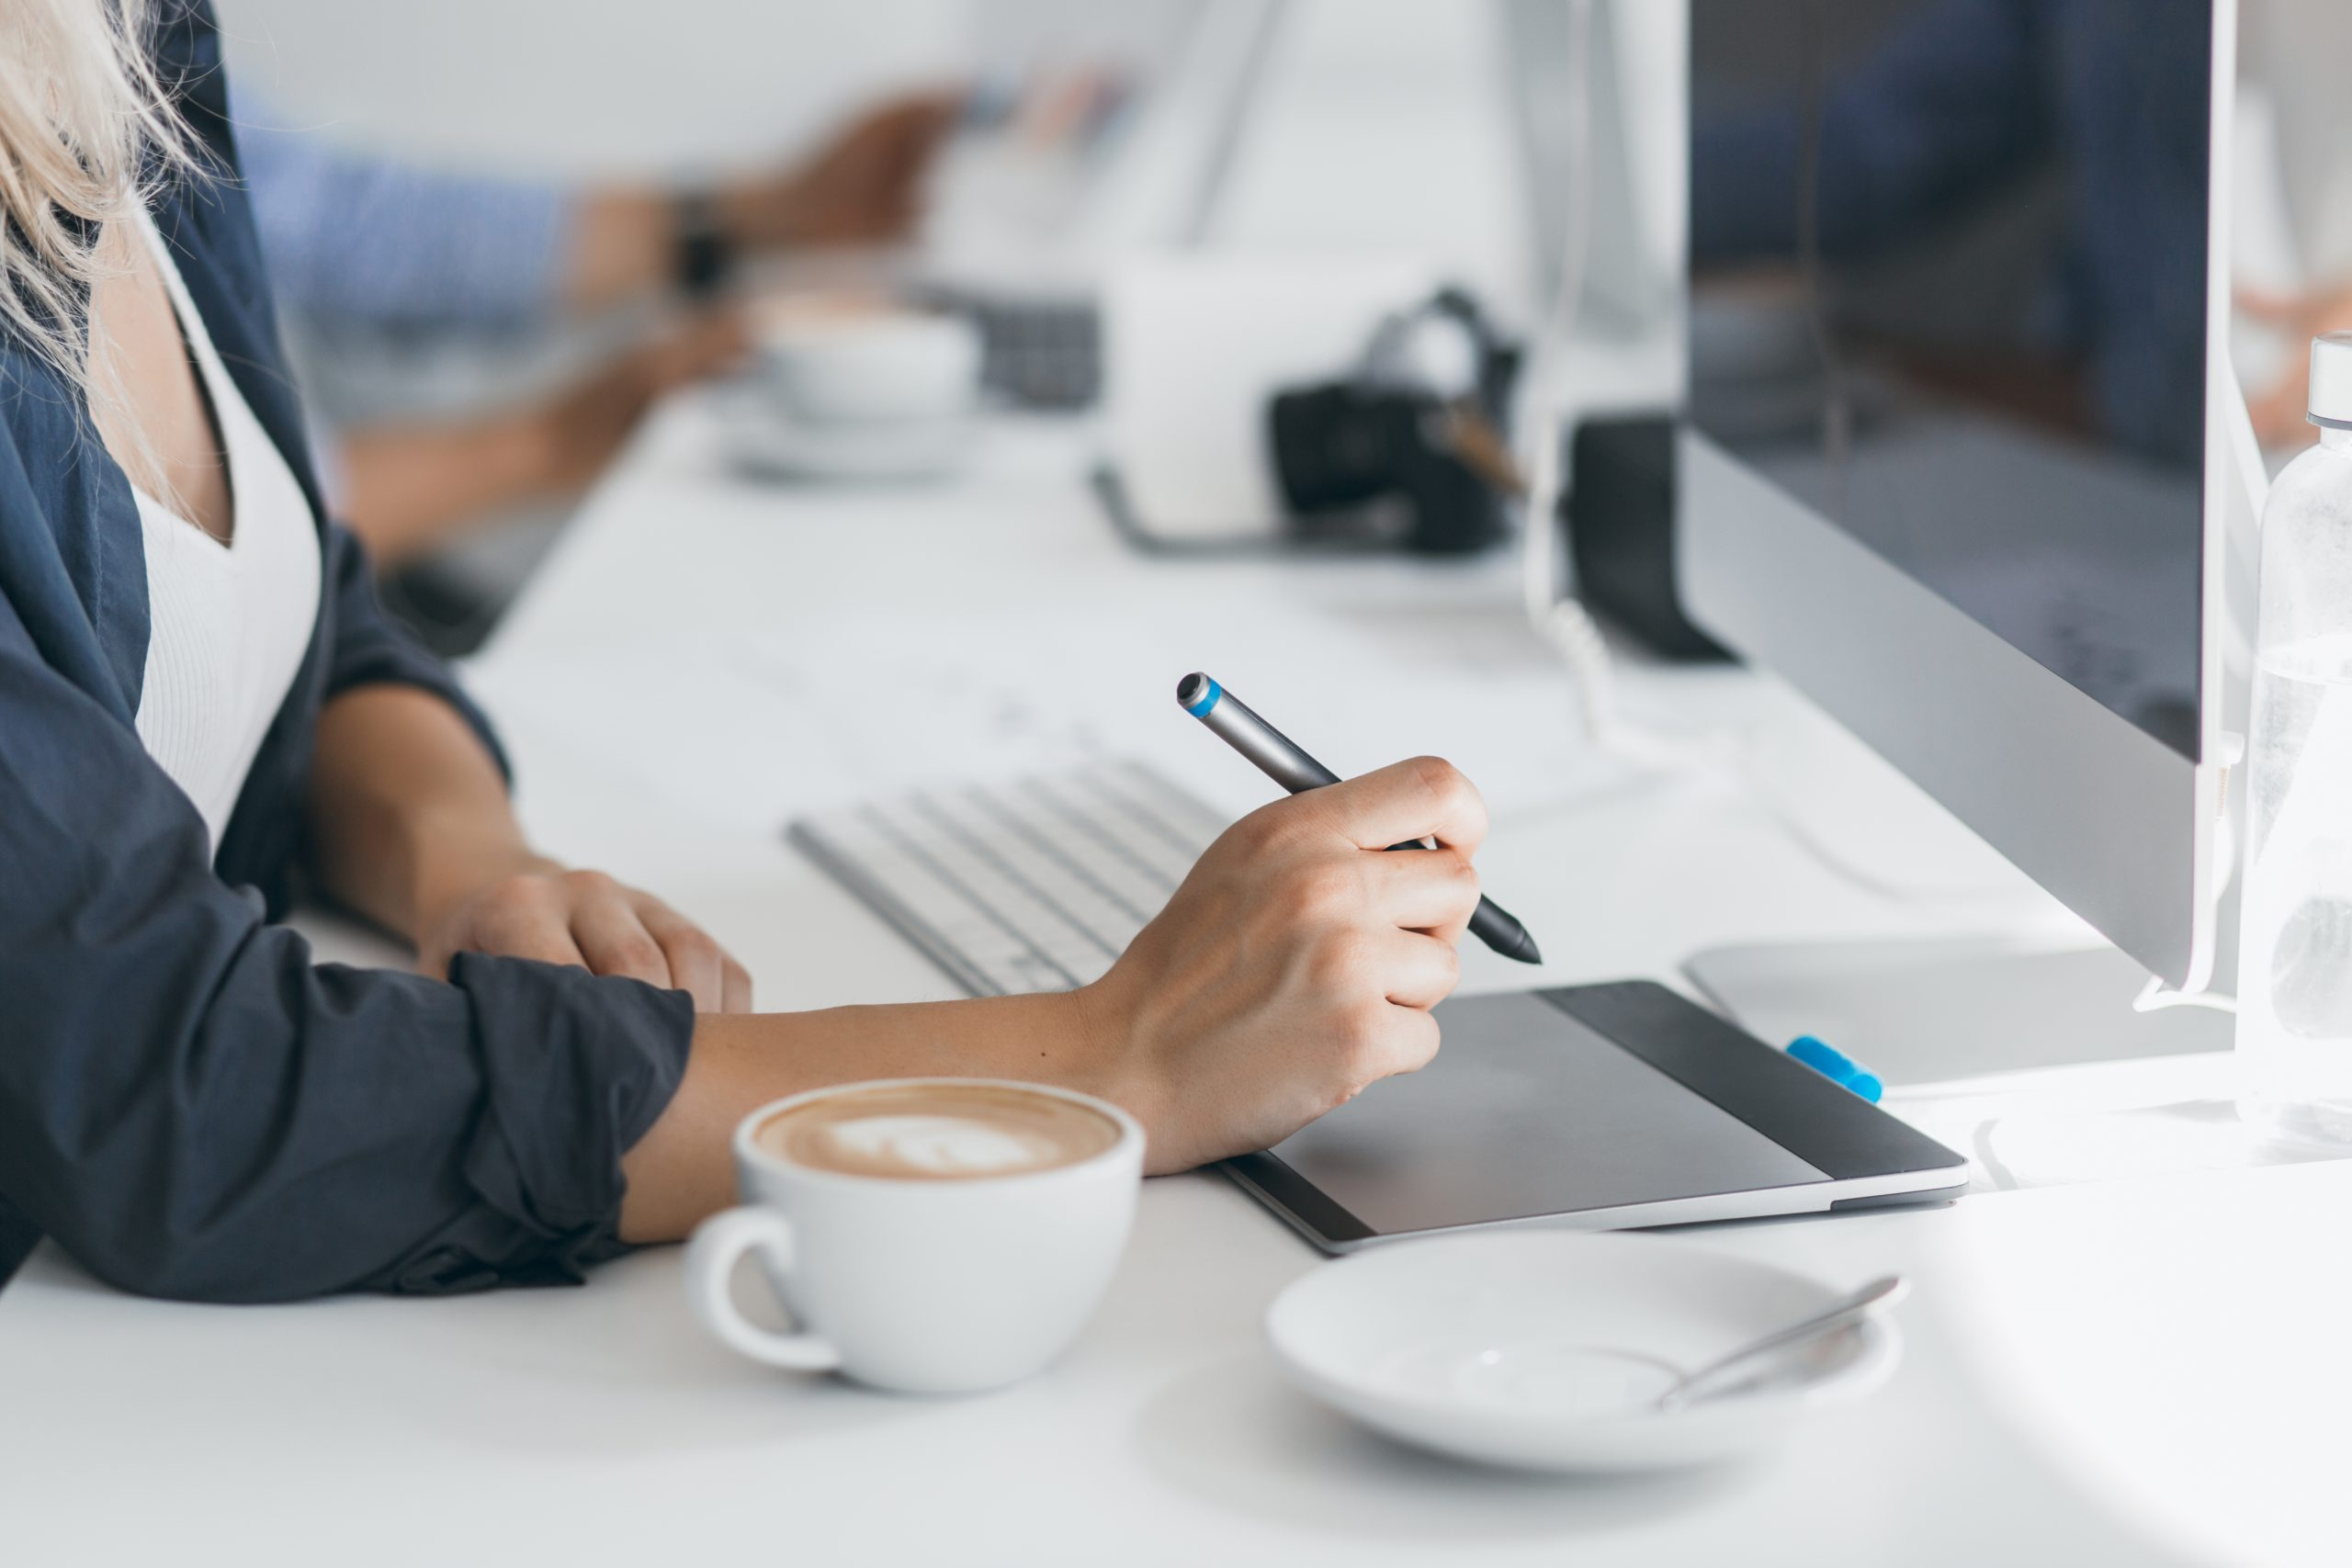 Portrait of freelance web-designer drinking coffee at workplace and holding stylus. Lightly-tanned lady in black shirt using tablet in her office, sitting in front of computer..